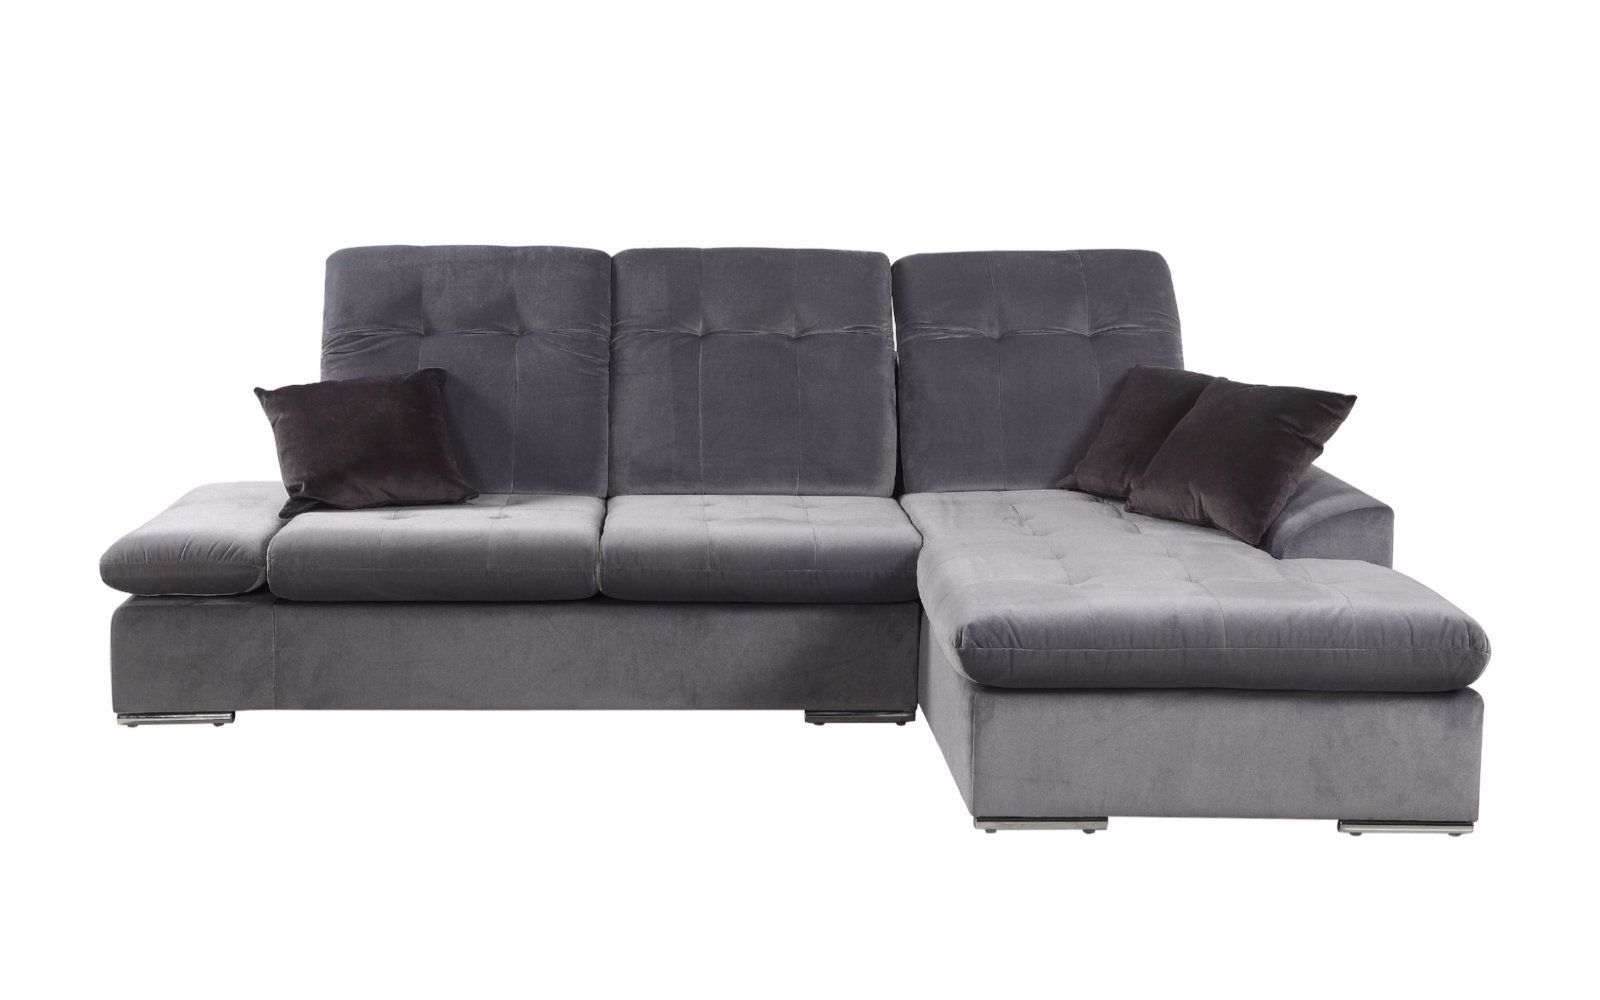 Concorde Microfiber Sectional Sofa With Chaise